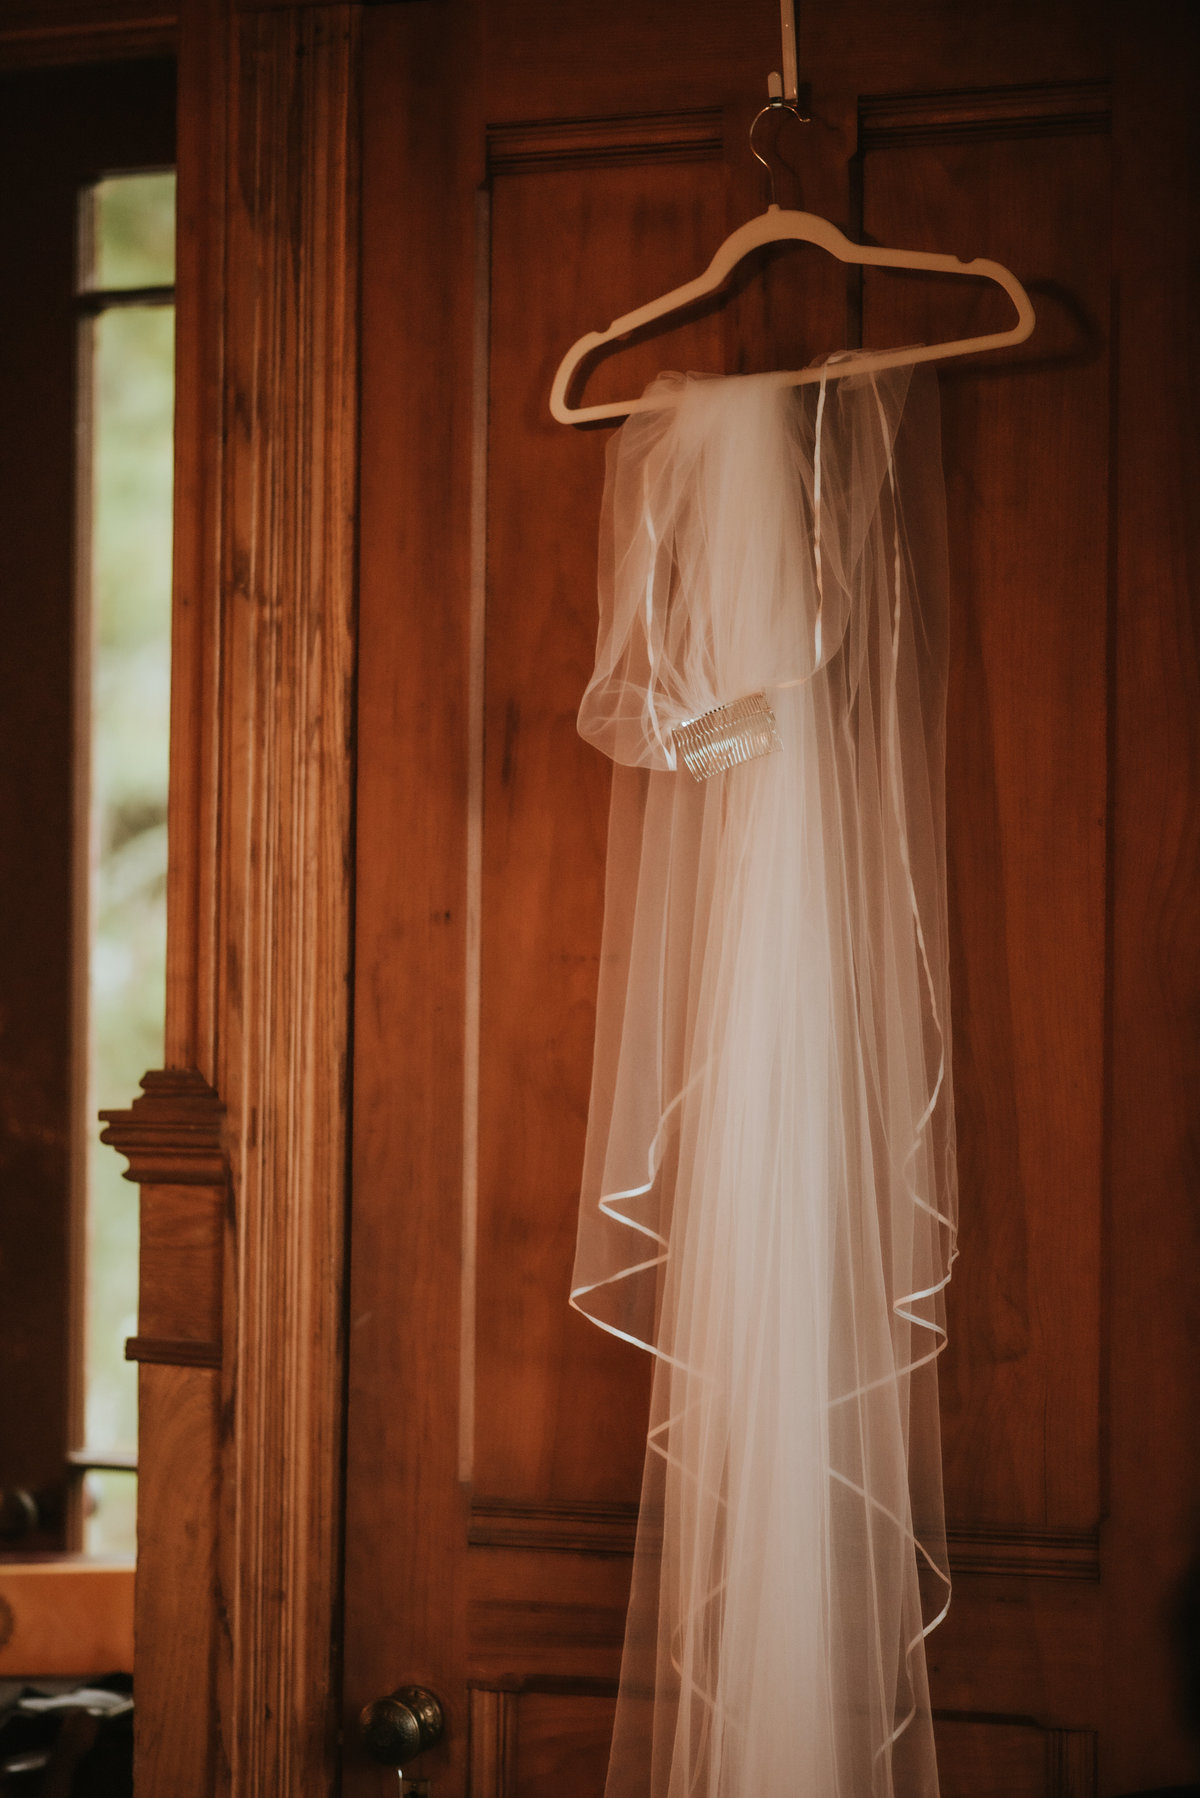 CatskillsJulietandEric2019WeddingPhotography (15 of 213)